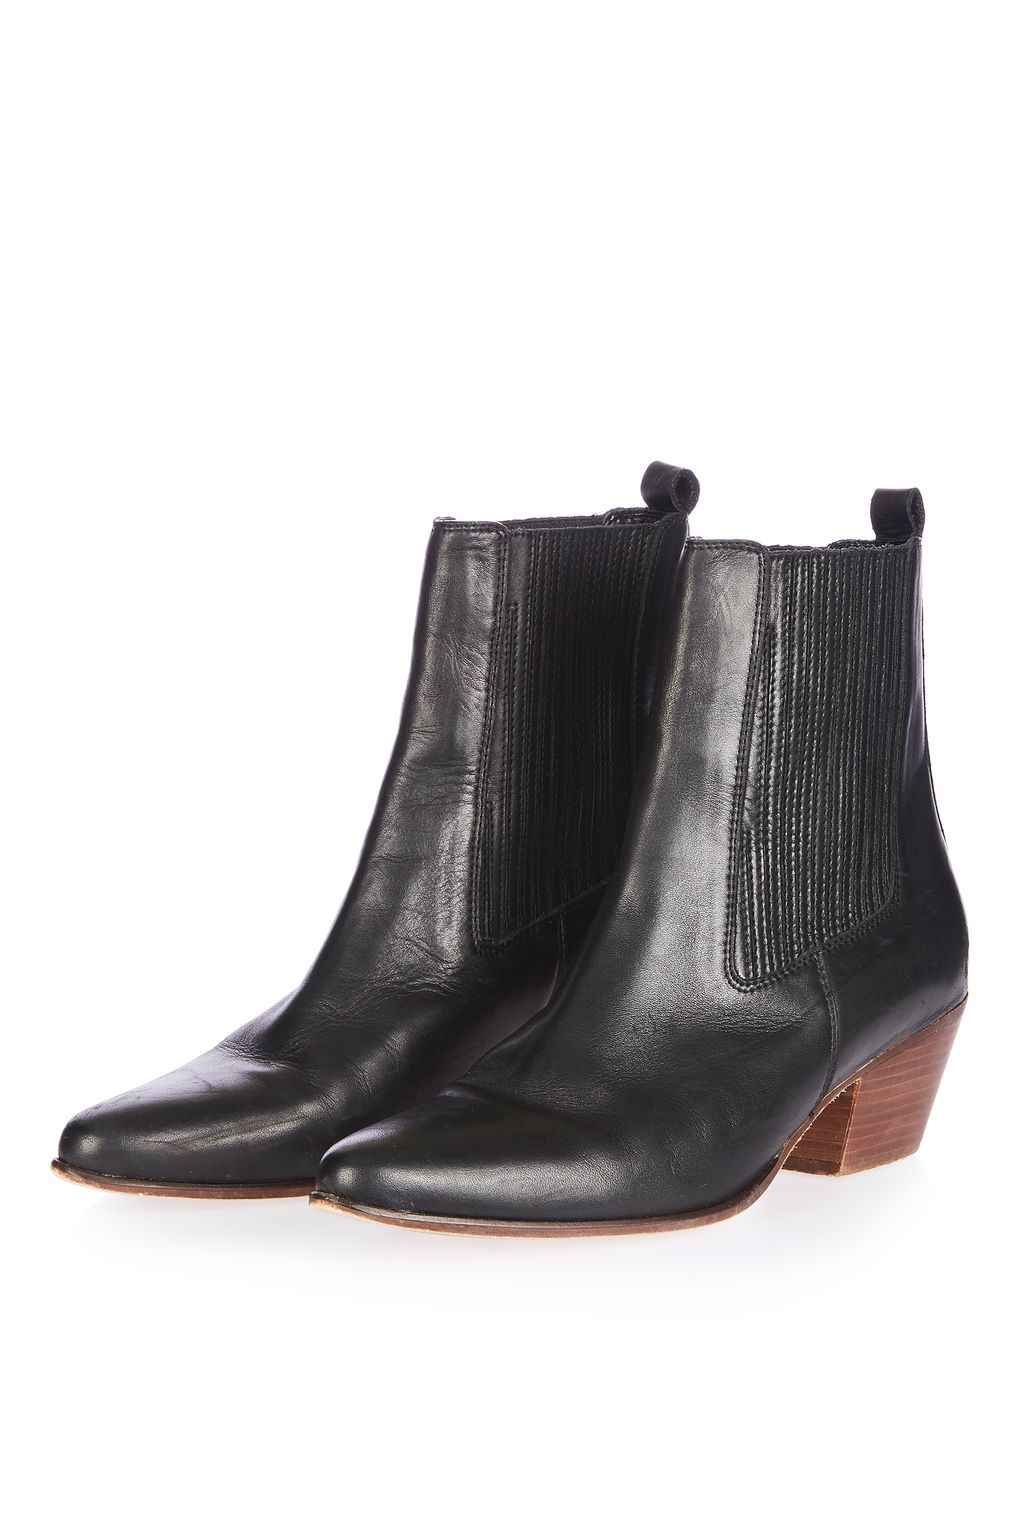 ACE Western Ankle Boots £69.00 topshop.com